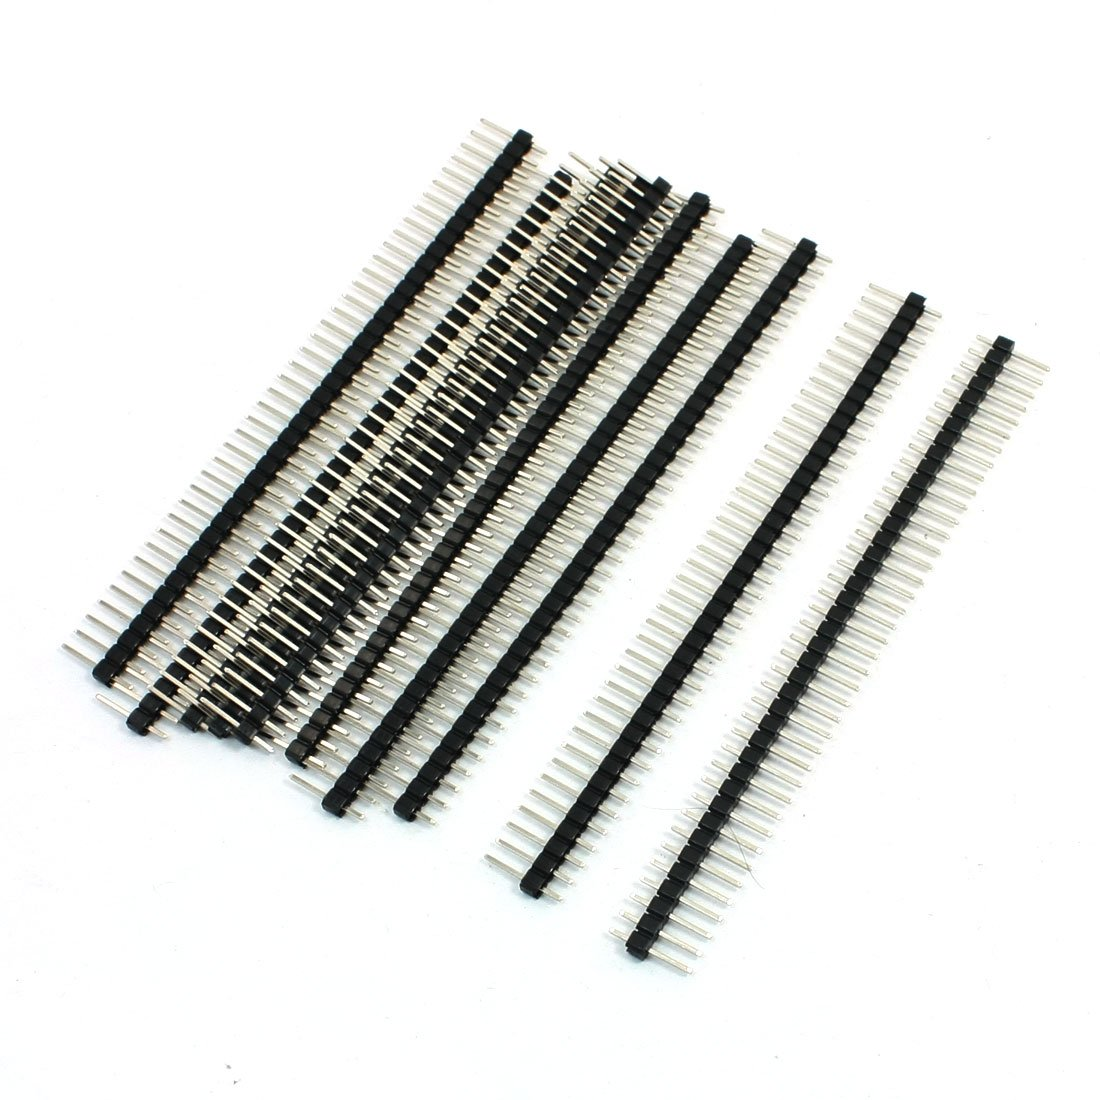 1x40 Pins Male 2.54 mm Pitch Single Row Pin Header Strip 10 Pcs